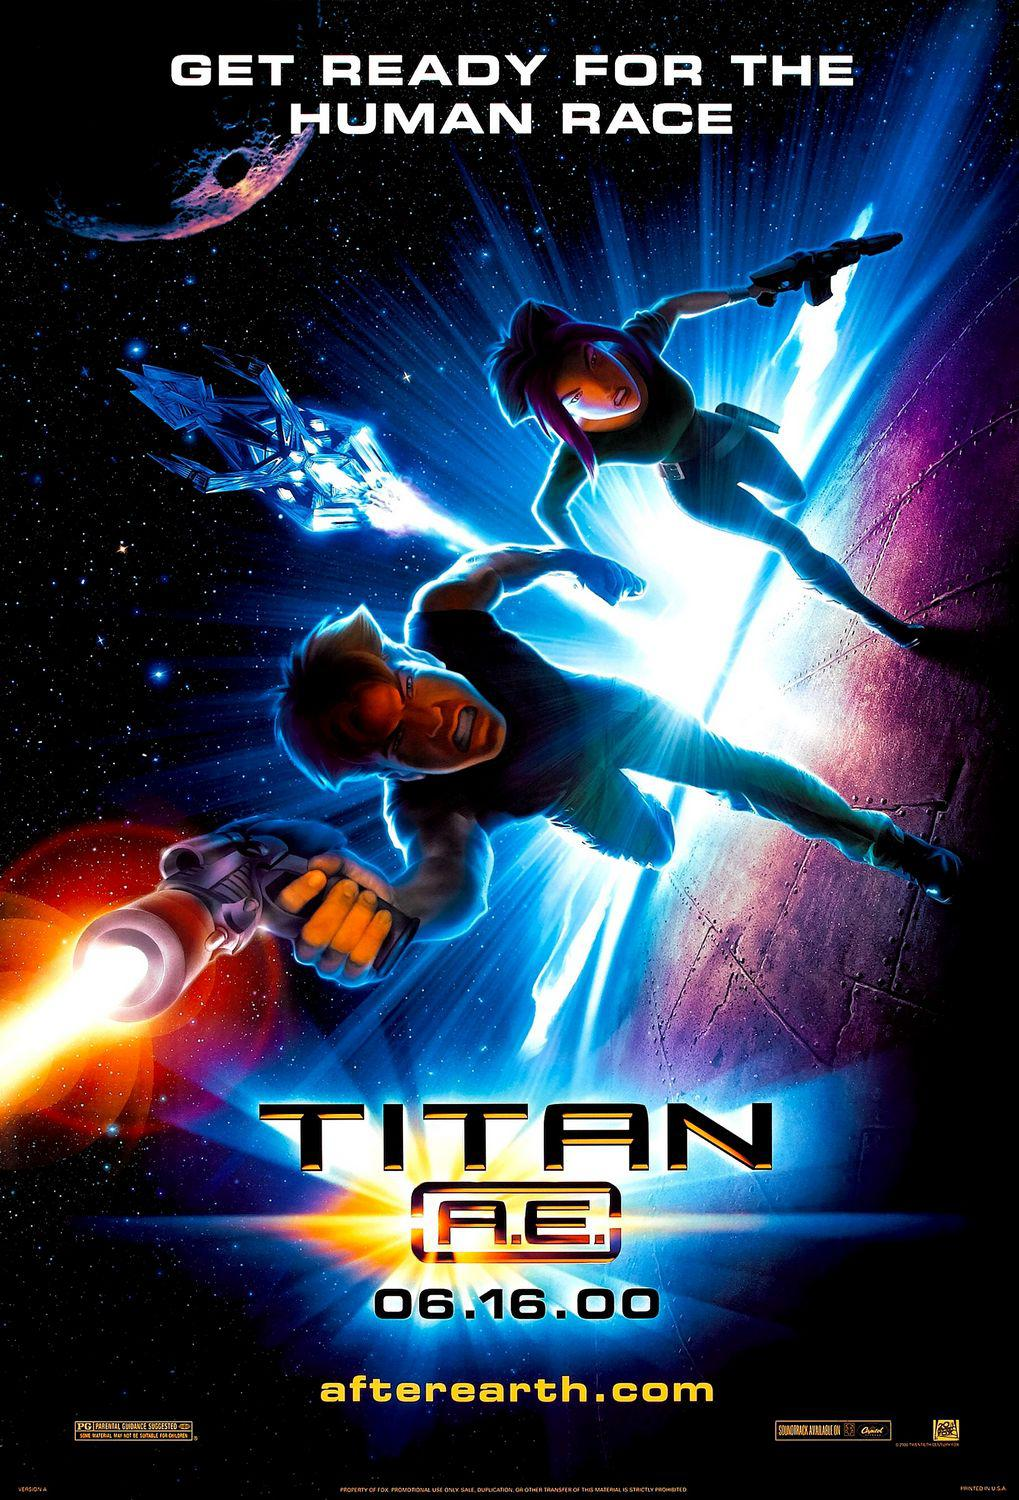 Titan AE - animated film - Get ready for the Human Race - poster